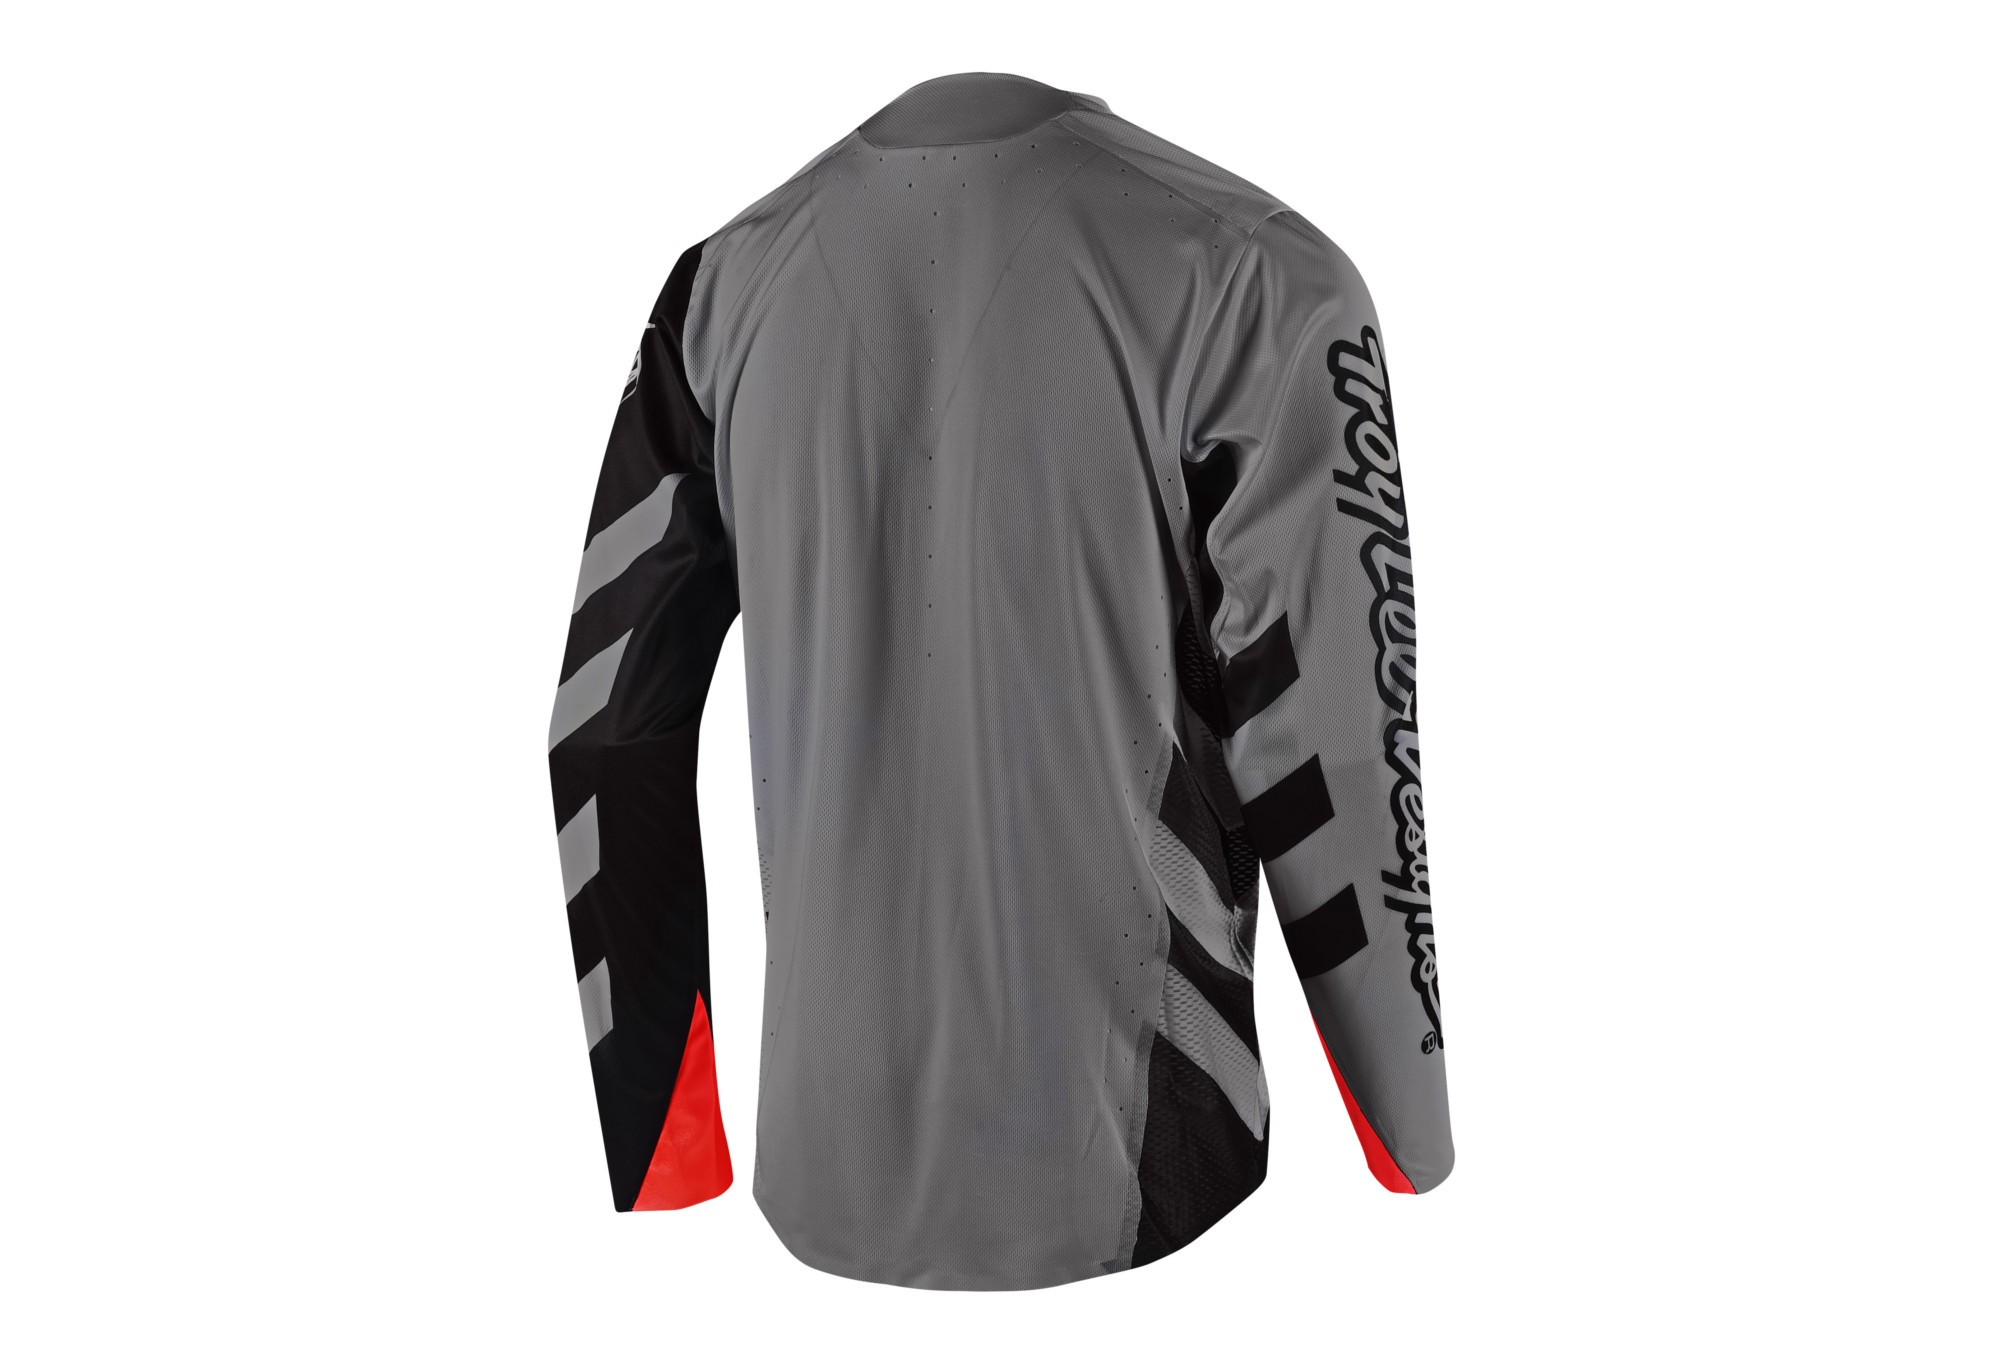 0d03b9396 Troy Lee Designs Sprint Elite Escape Long Sleeves Jersey Grey Black ...